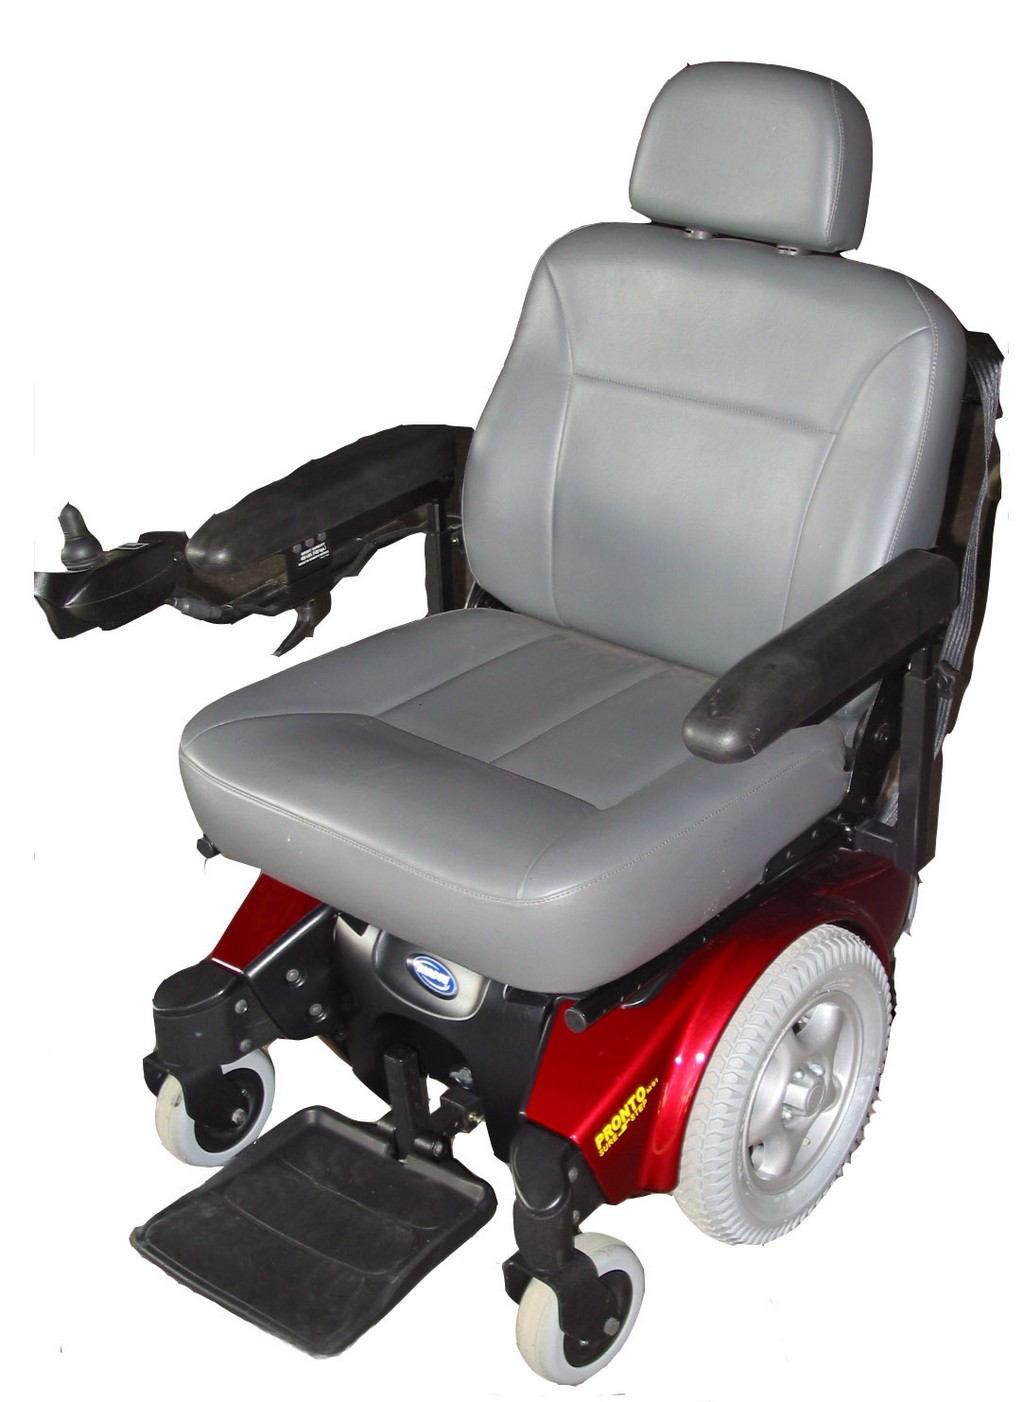 guardian aspire power wheelchair, metro power wheel chairs, jazzy power wheelchair, power wheel chair aurora co